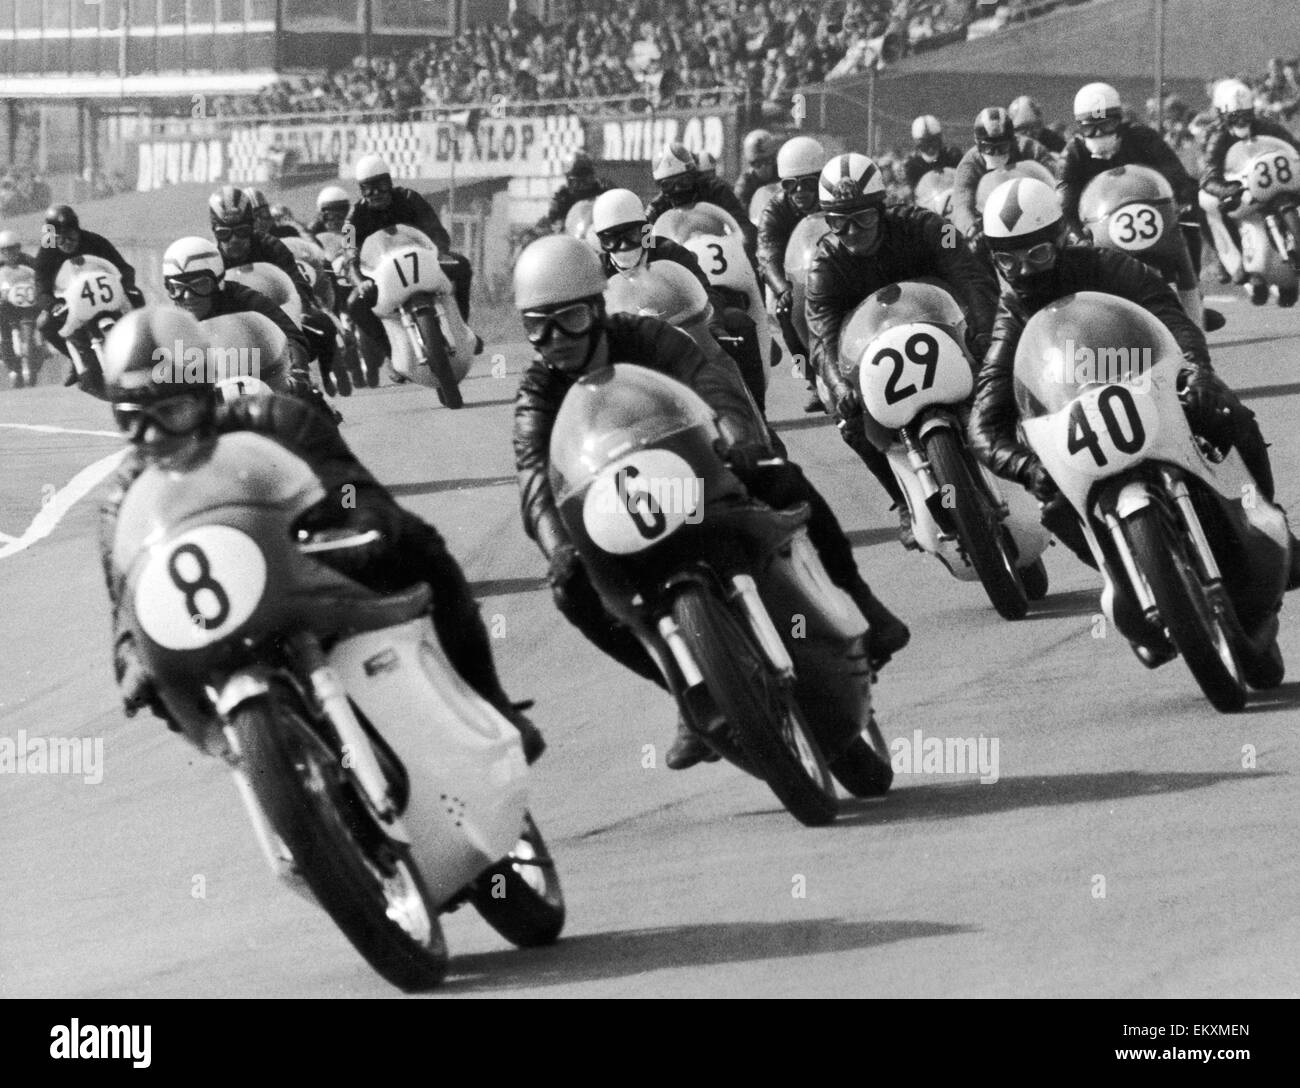 The start of the 251cc to 350cc race at Brands Hatch. The 42 competitors can be seen here racing towards Paddock - Stock Image